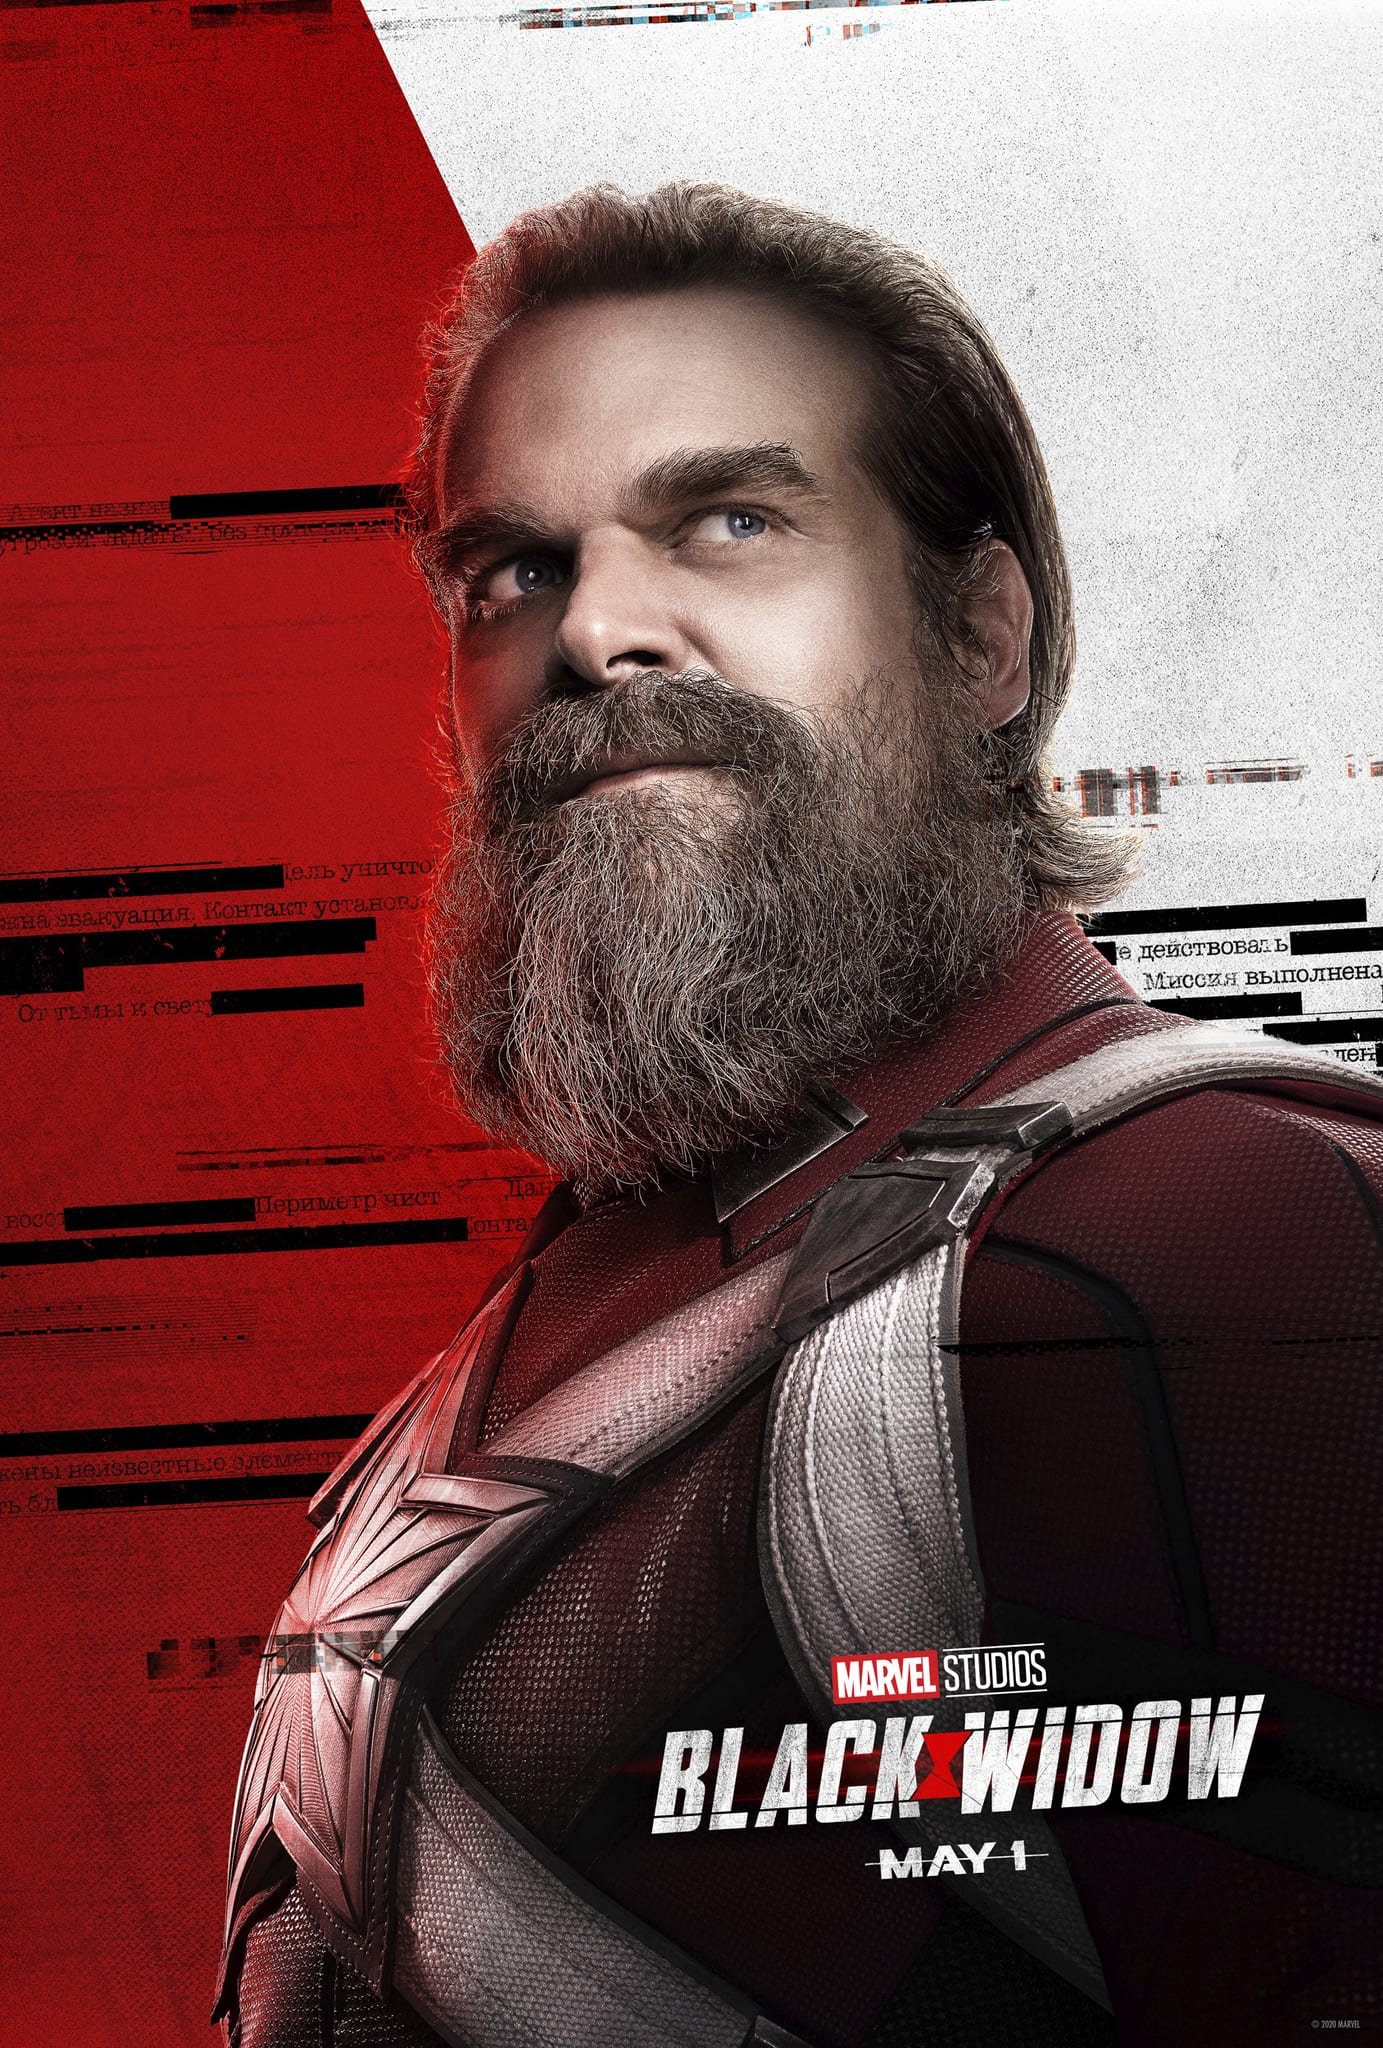 Marvel Black Widow Character Posters David Harbour as Alexei Shostakov Red Guardian